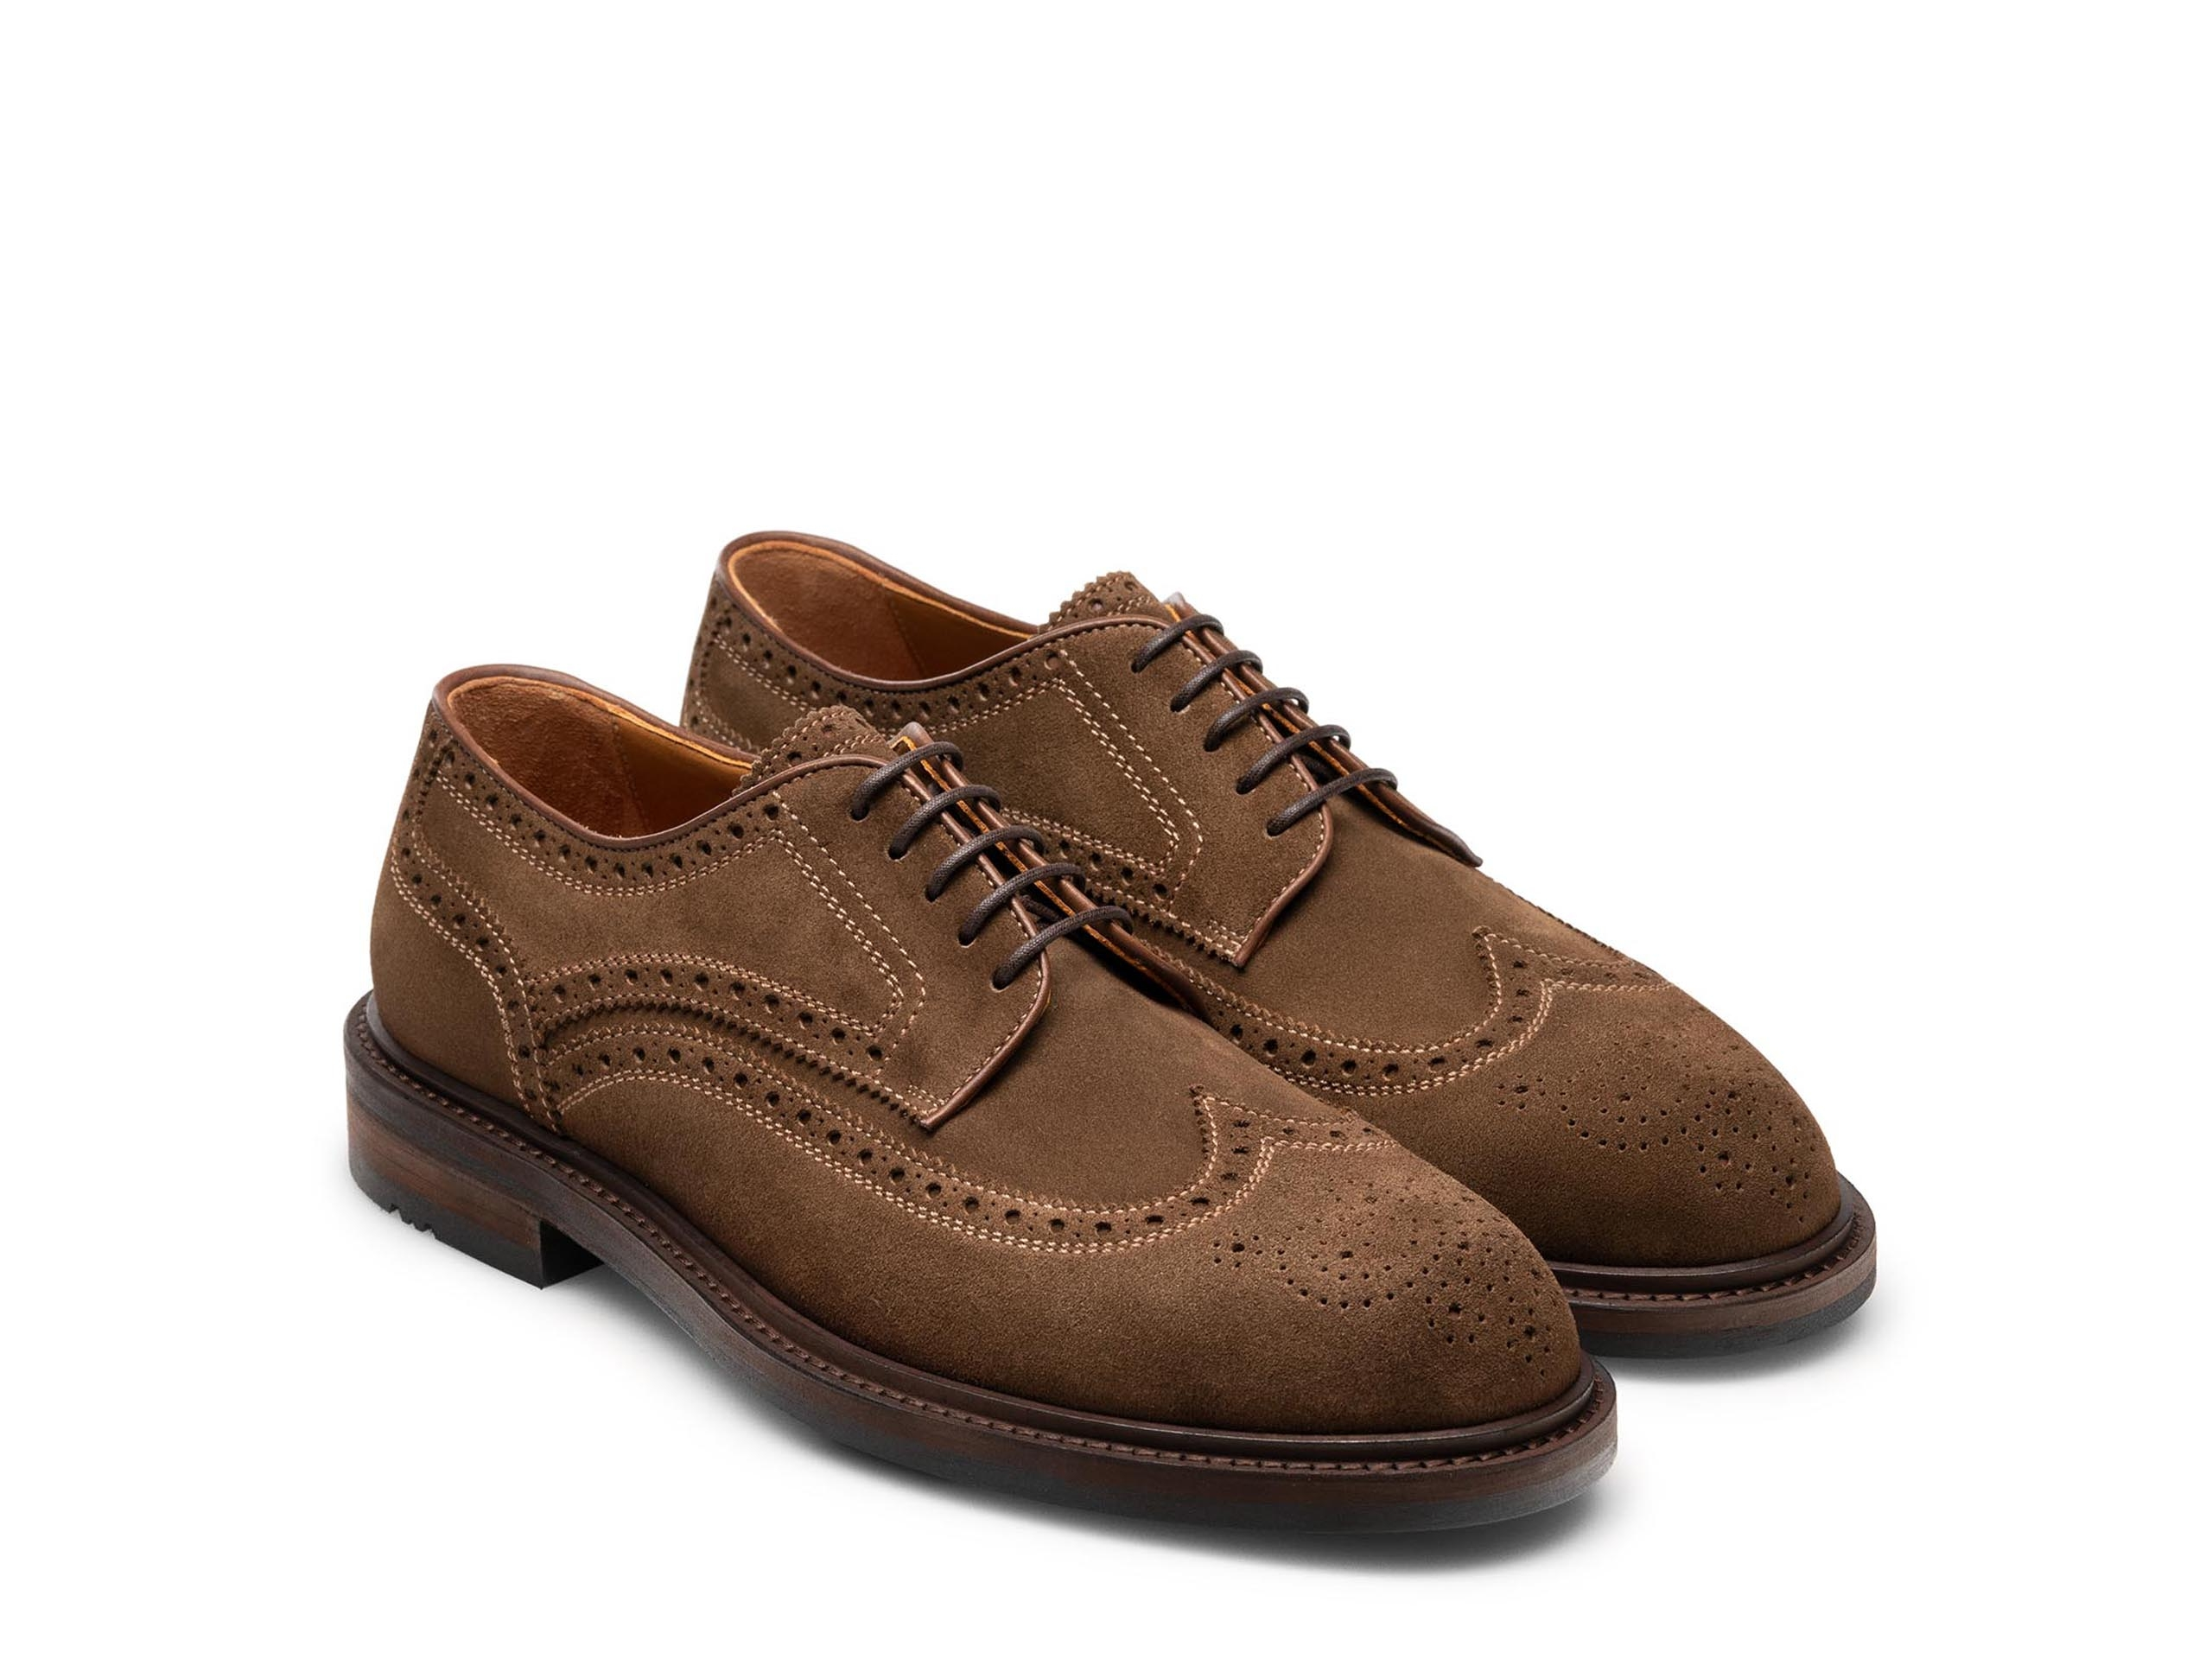 Pair of the Apolo Torba Suede